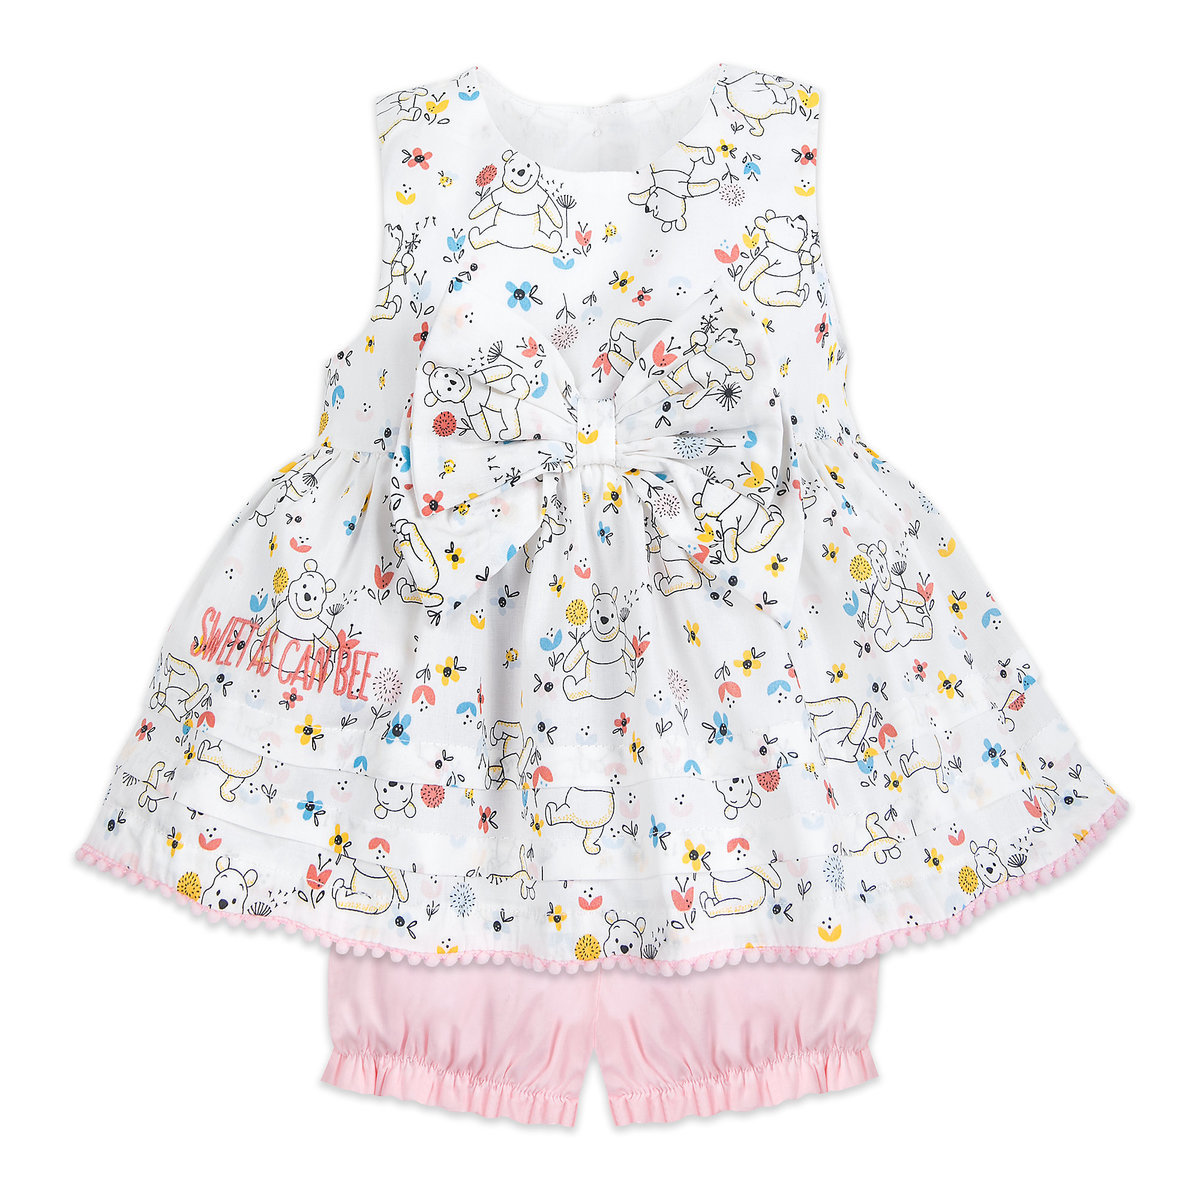 1f27f9e34 Product Image of Winnie the Pooh Dress and Bloomer Set for Baby # 1